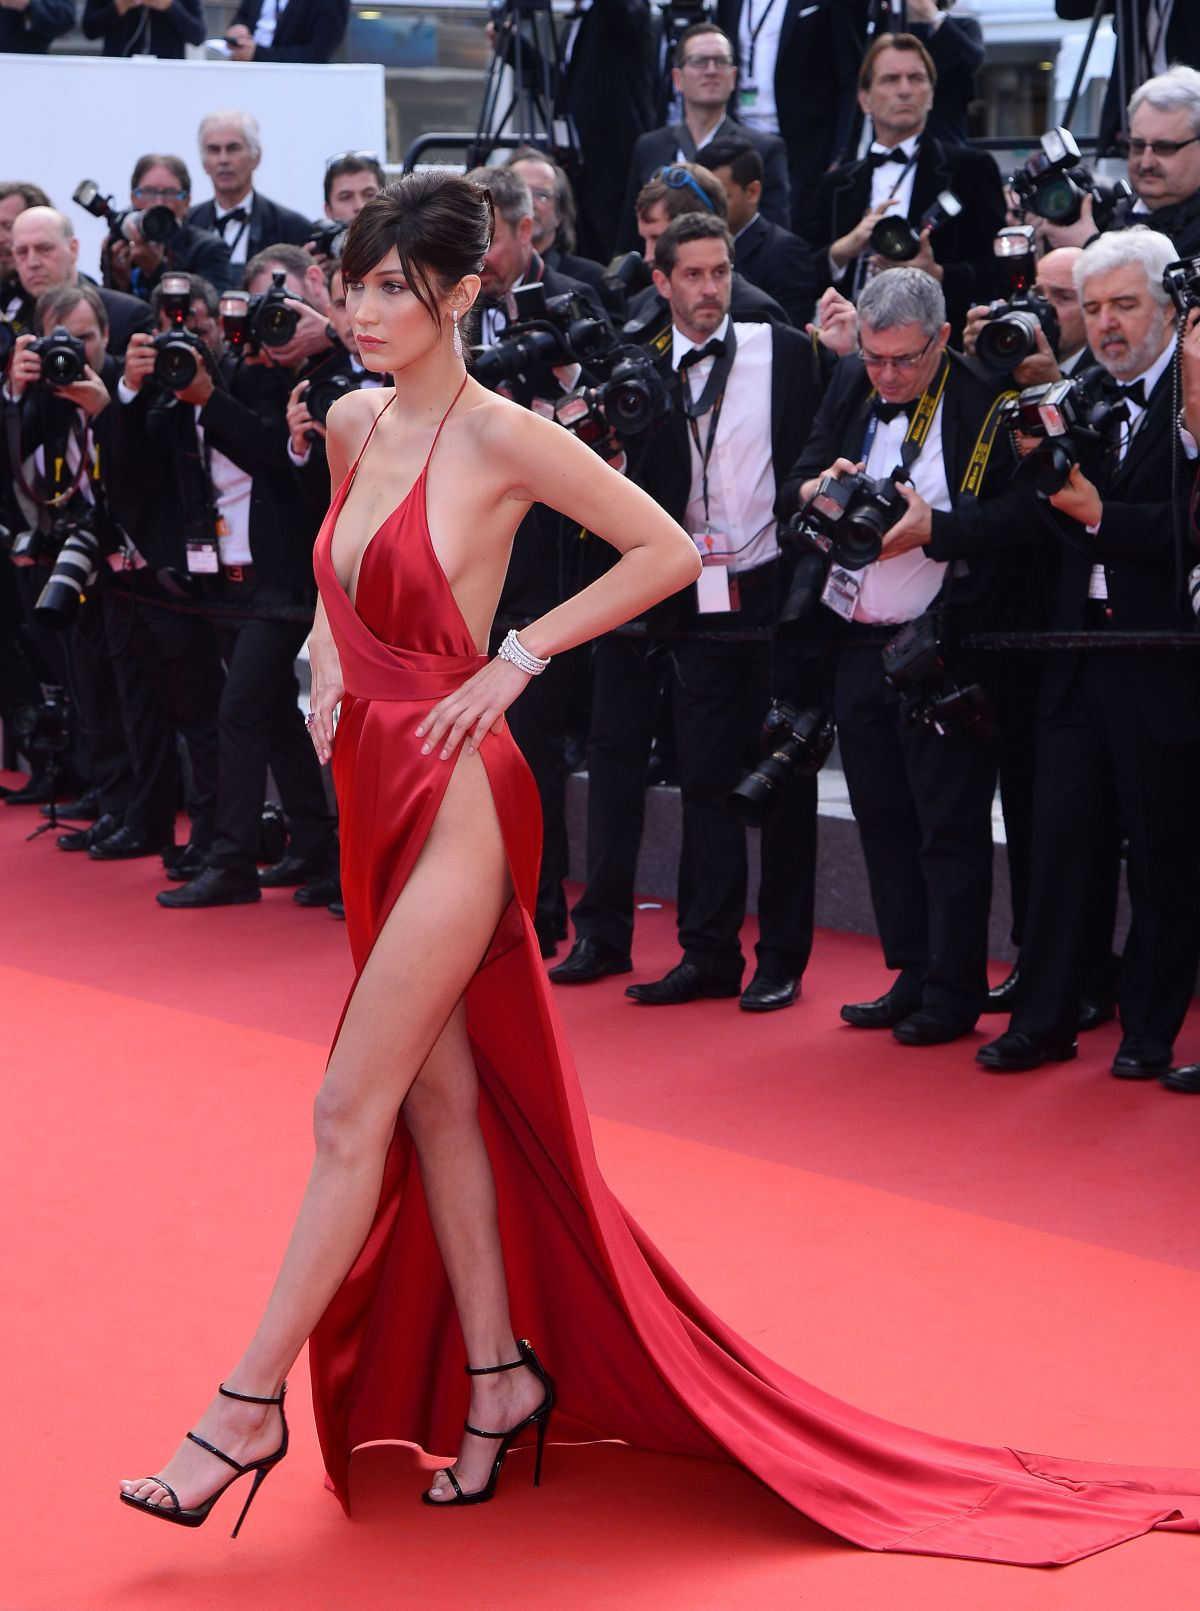 http-forum.ns4w.org-showthread.php-570203-bella-hadid-the-unknown-girl-premiere-at-69th-annual-cannes-film-festival-05-18-16-adds-s-08ce82a2f025b7305318944fd6bd9518_26